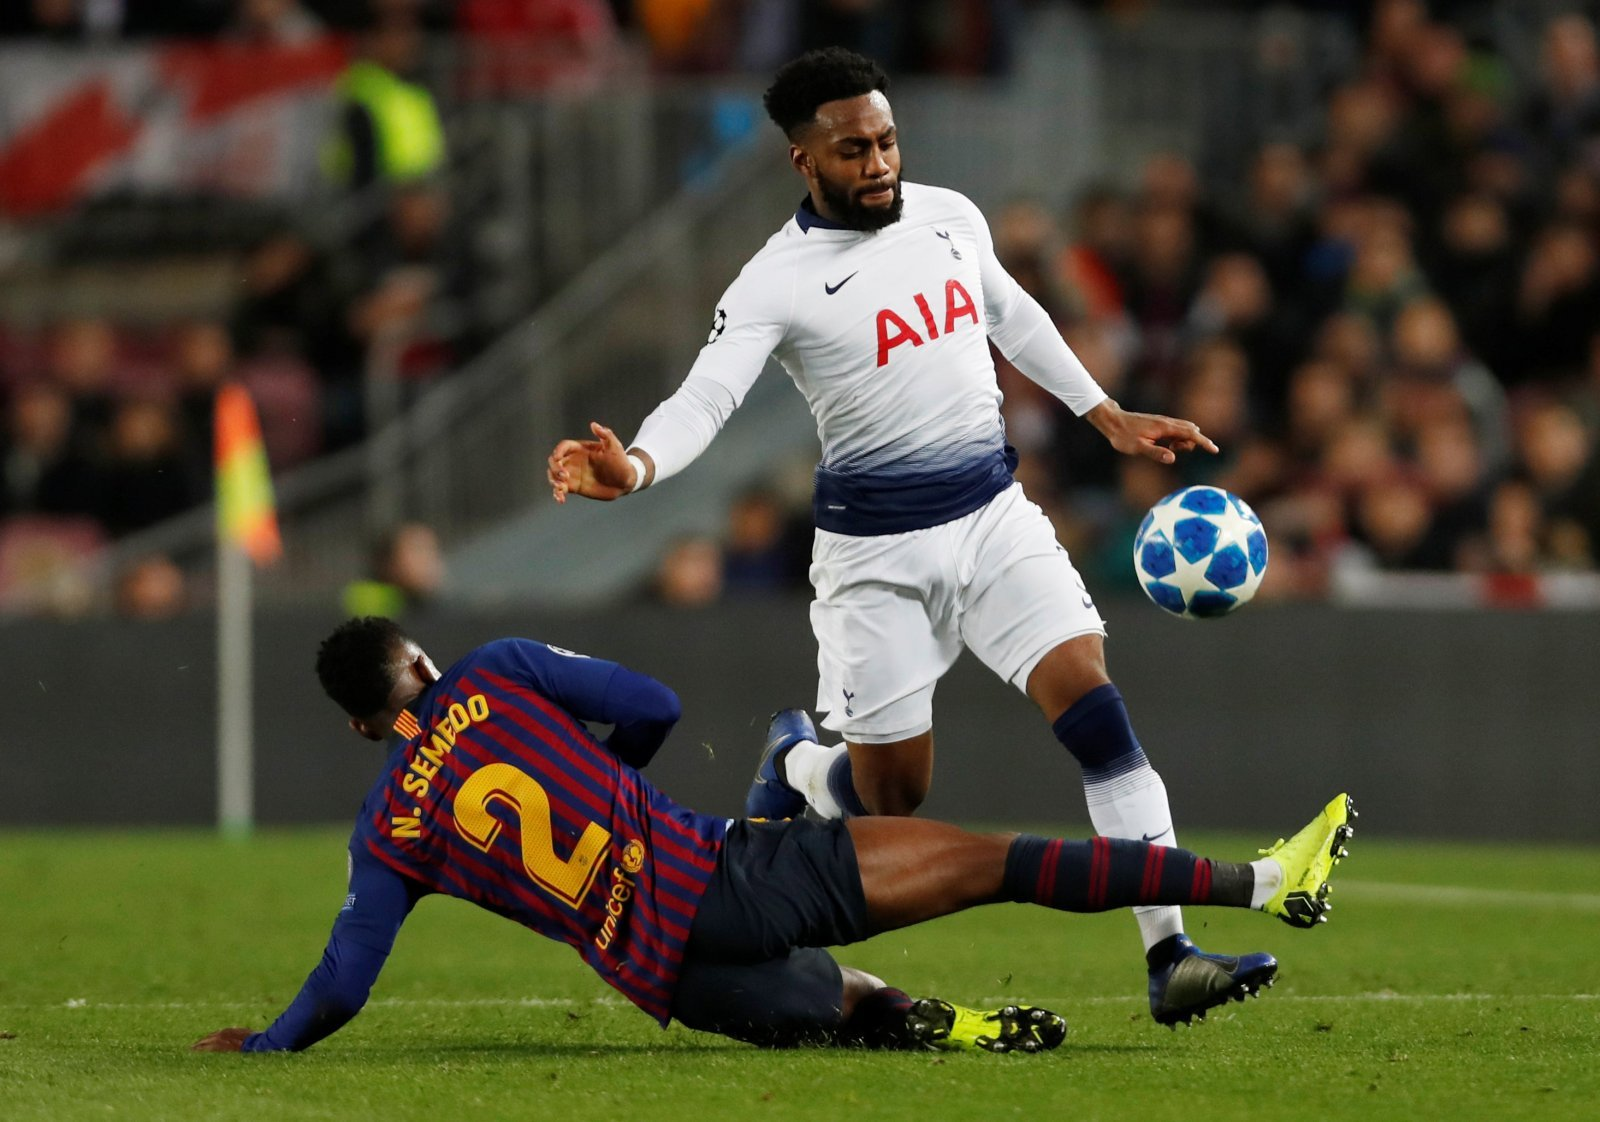 Tottenham Hotspur: Danny Rose set to stay at the club this season